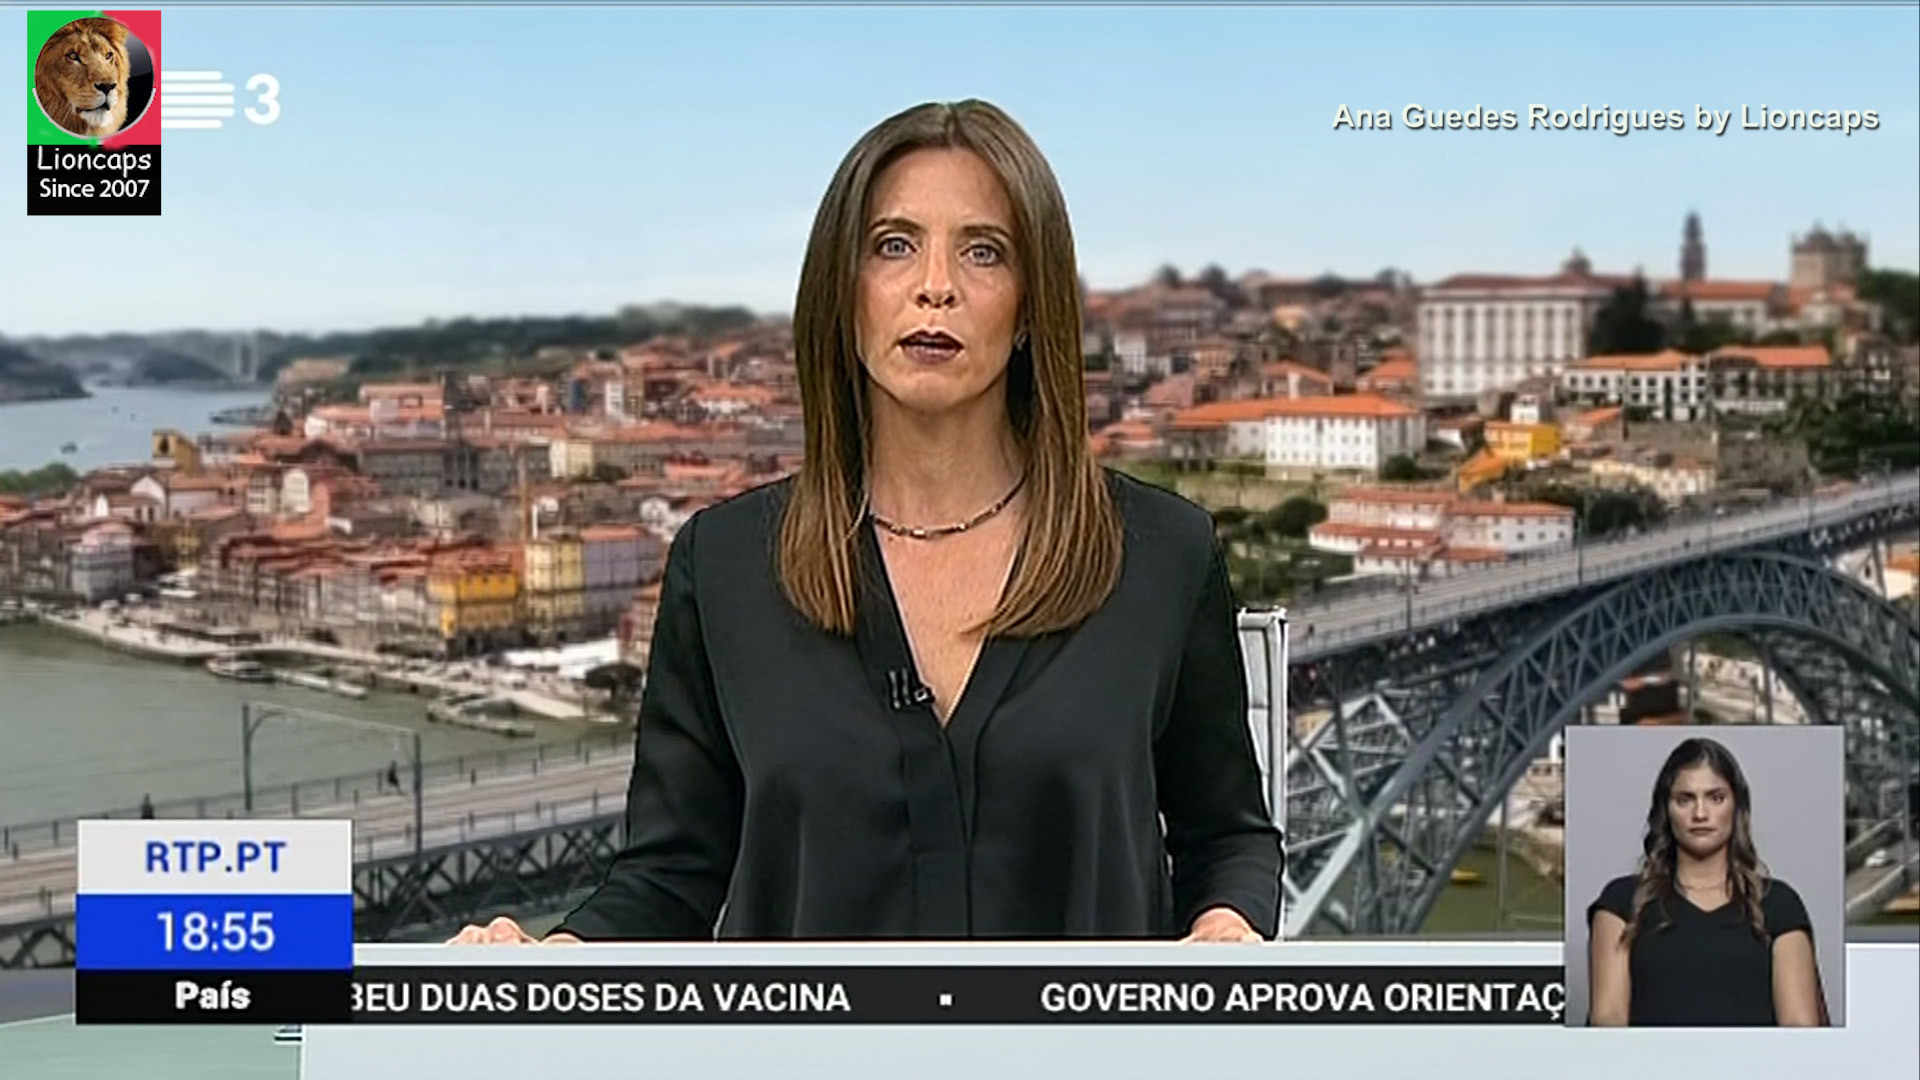 ana_guedes_rodrigues_lioncaps_15_08_2021 (7).jpg